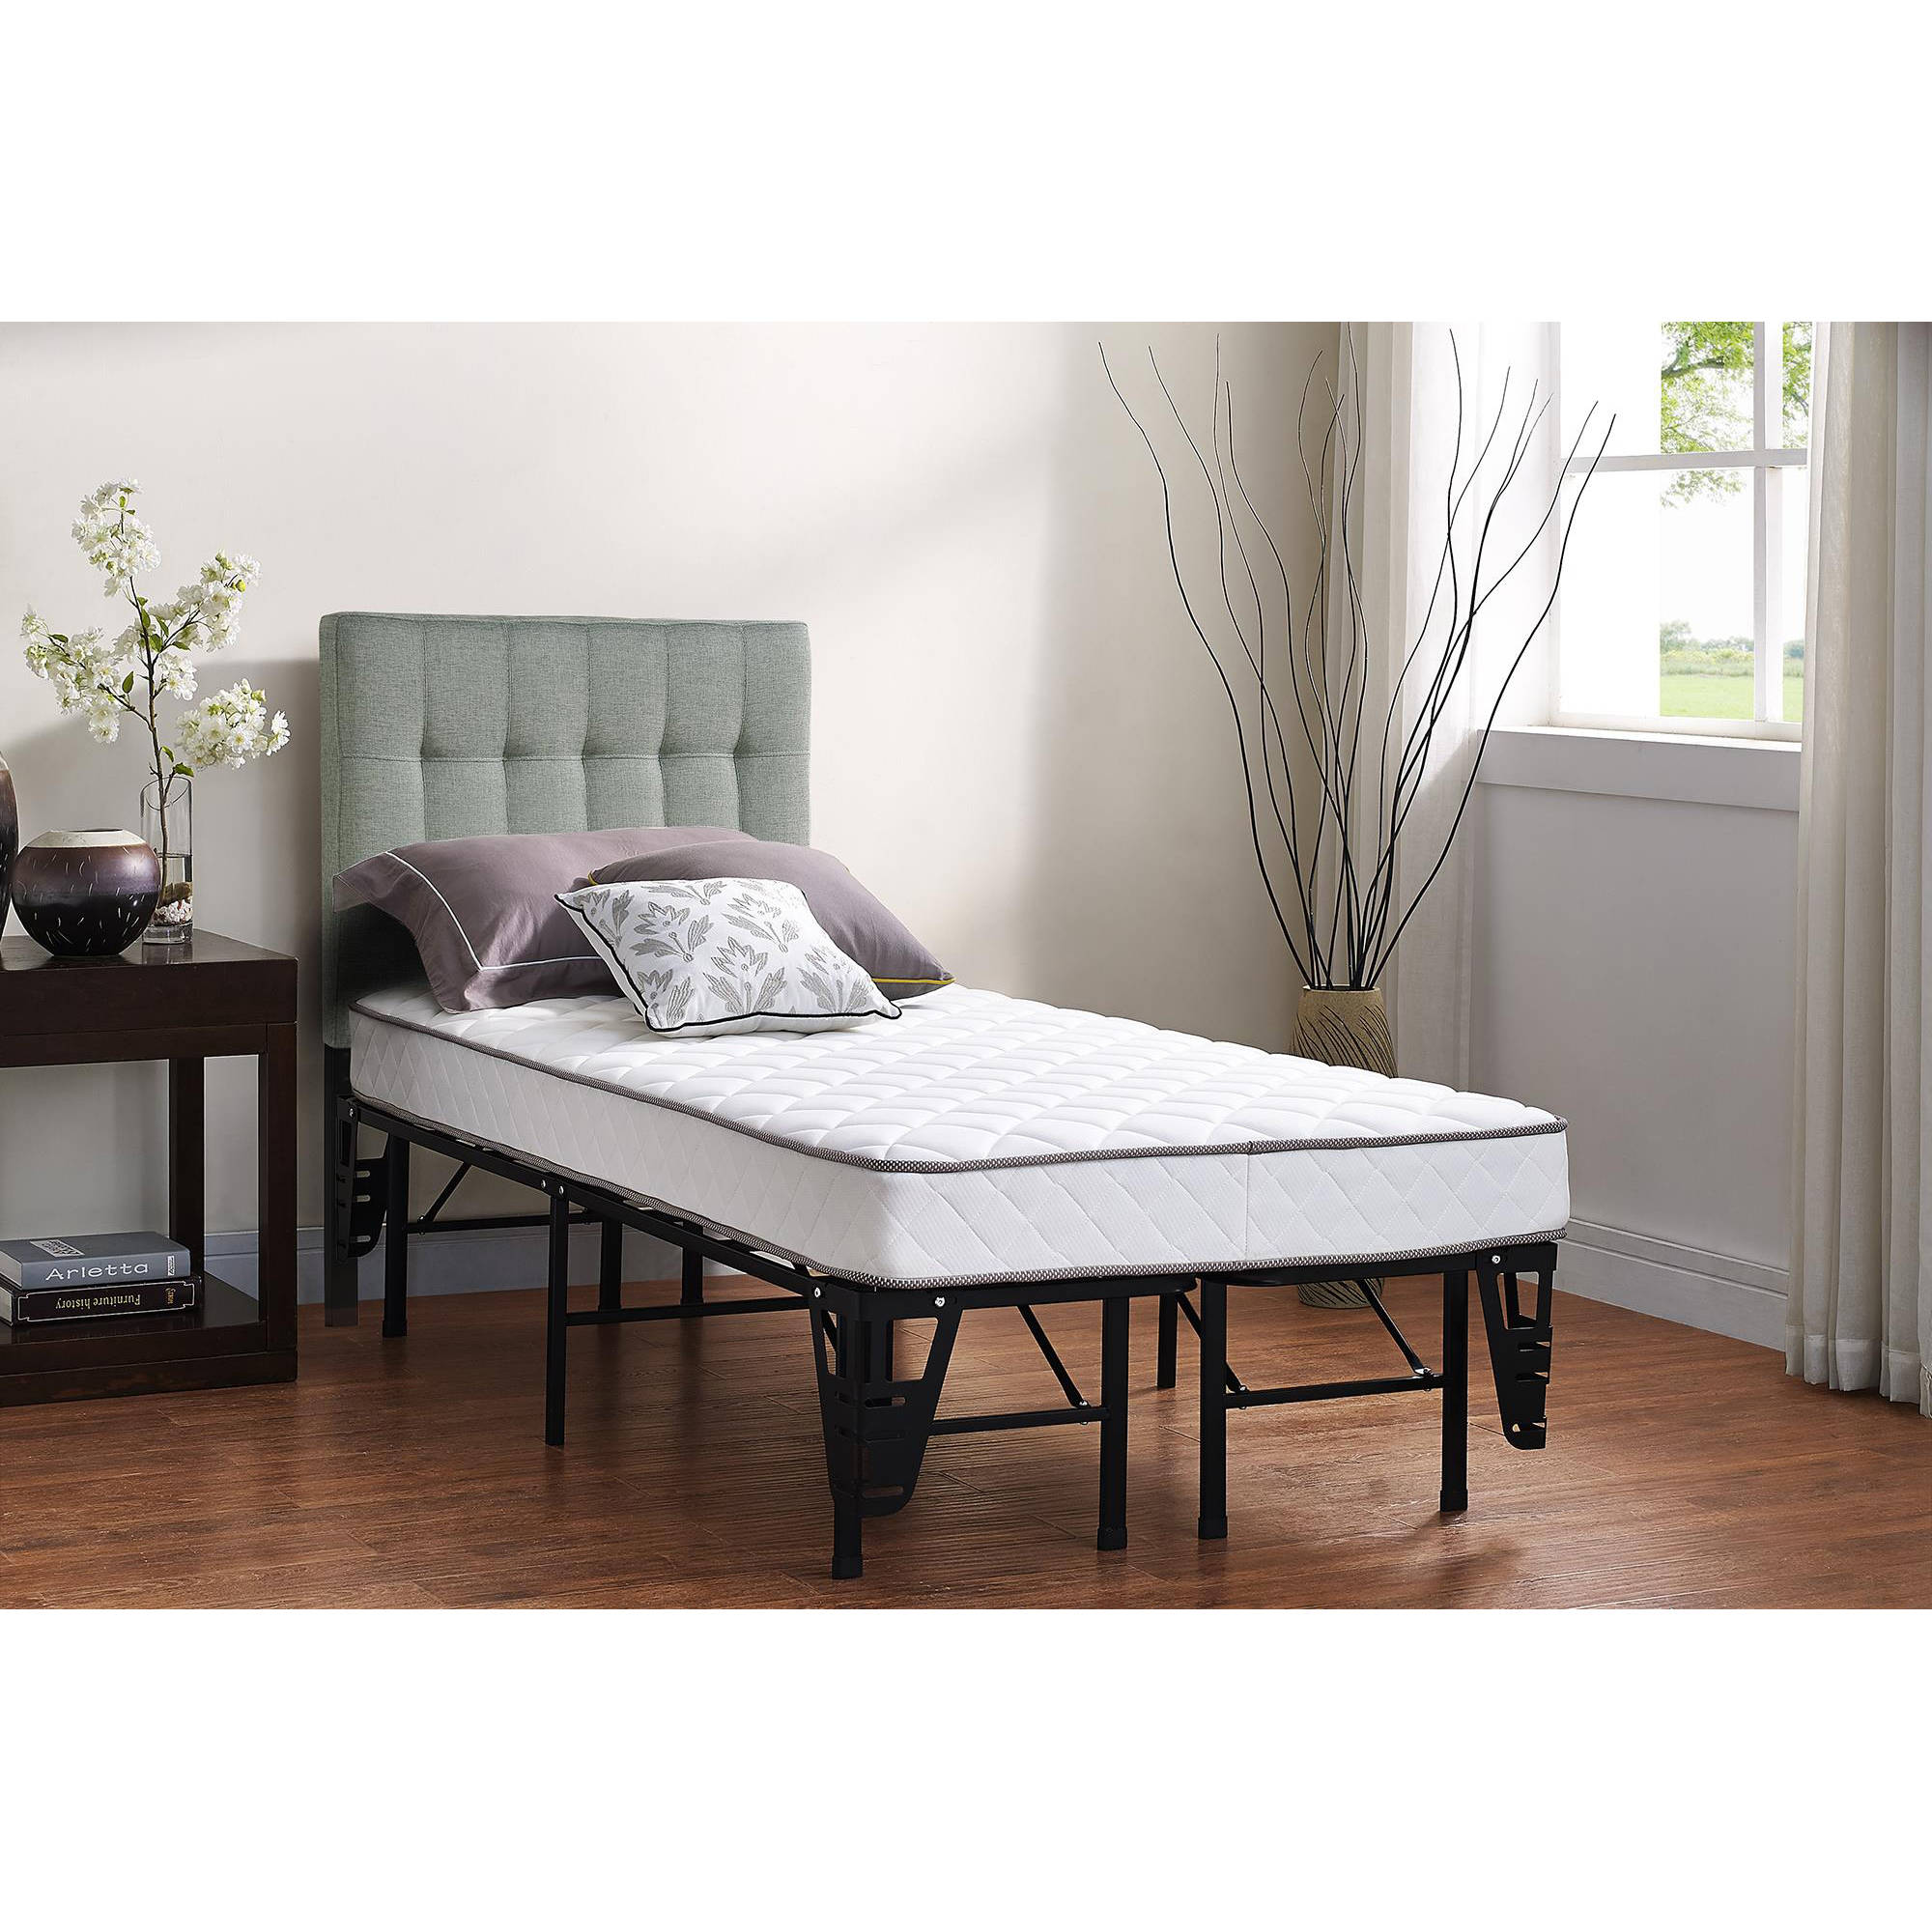 6 Quot Innerspring Futon Mattress Full Available In